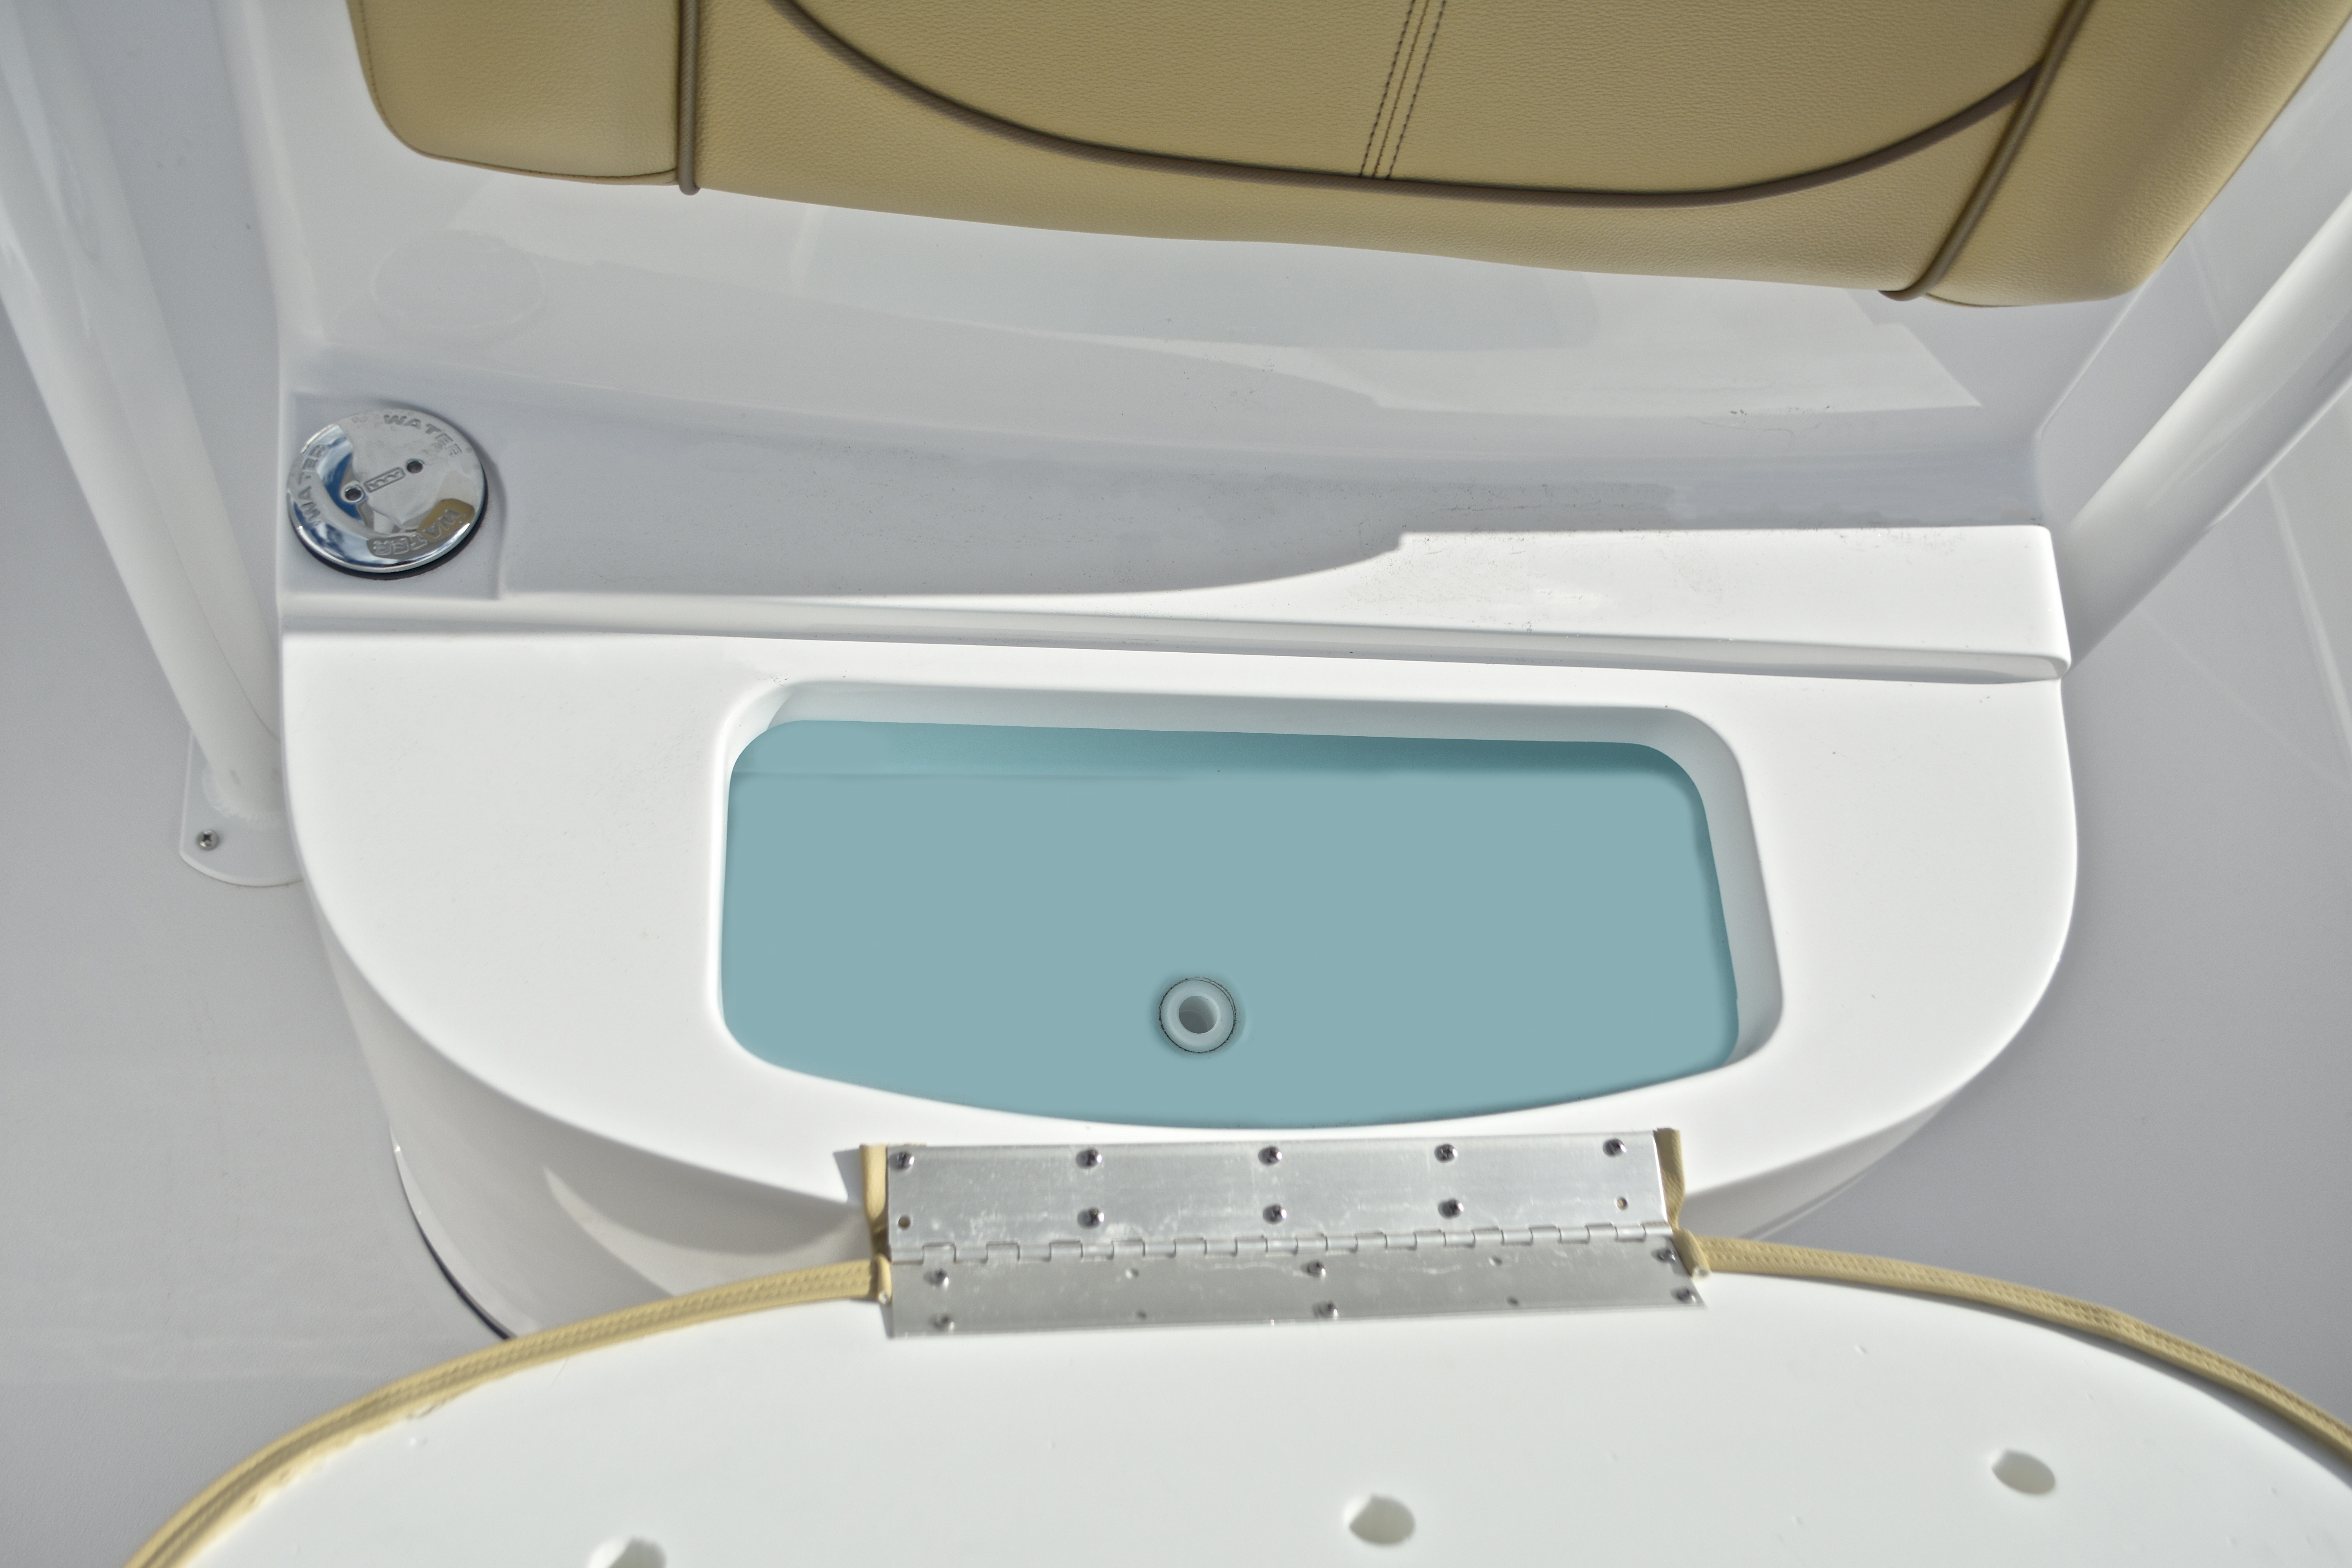 Thumbnail 52 for New 2017 Sportsman Open 232 Center Console boat for sale in West Palm Beach, FL